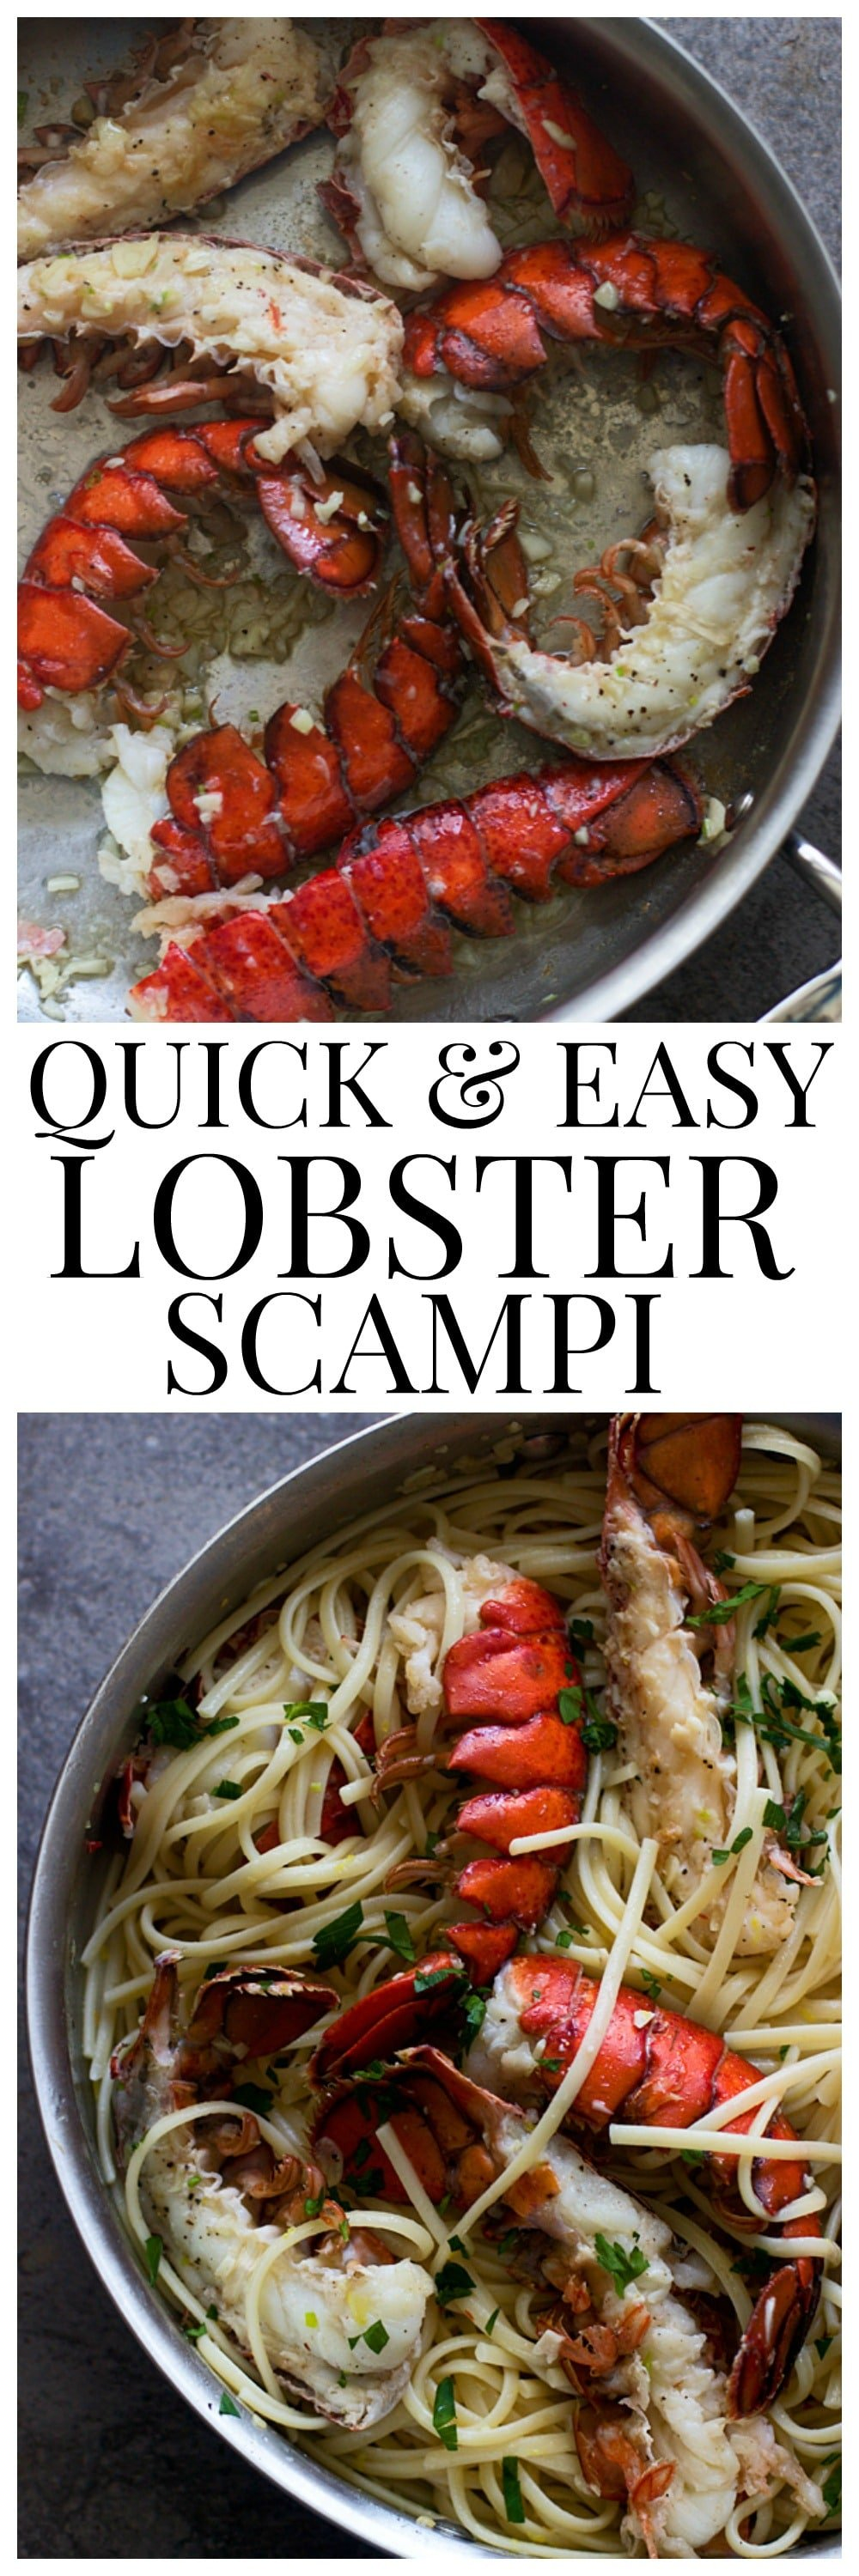 Quick and Easy Lobster Scampi